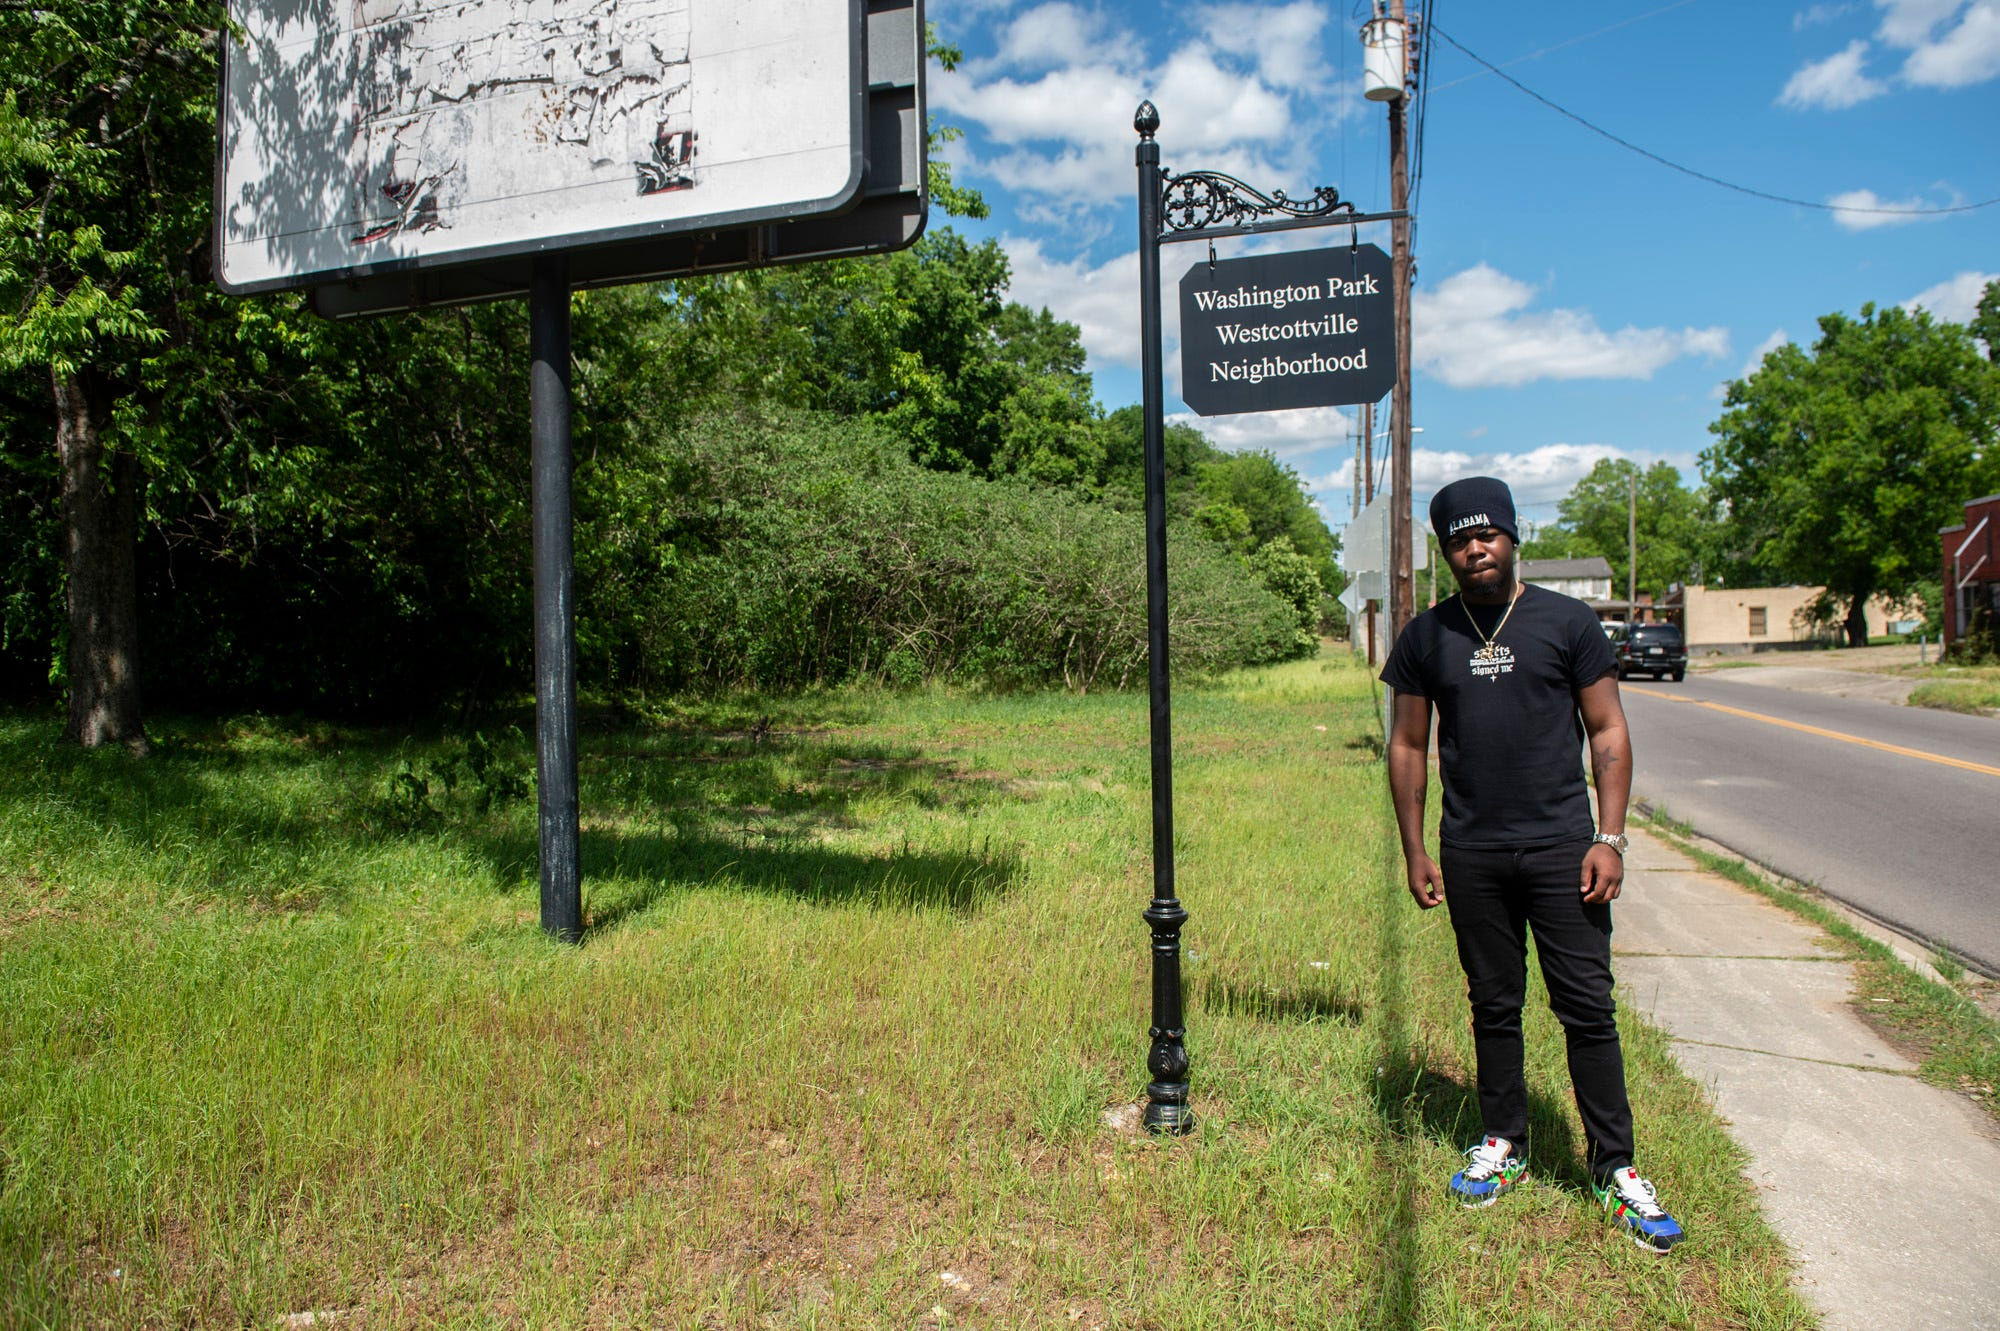 Growing up in west Montgomery's Washington Park, Jaterrius Johnson experienced his first violent loss at 13 years old. Since then, he says he has lost so many people it's hard to remember them all.